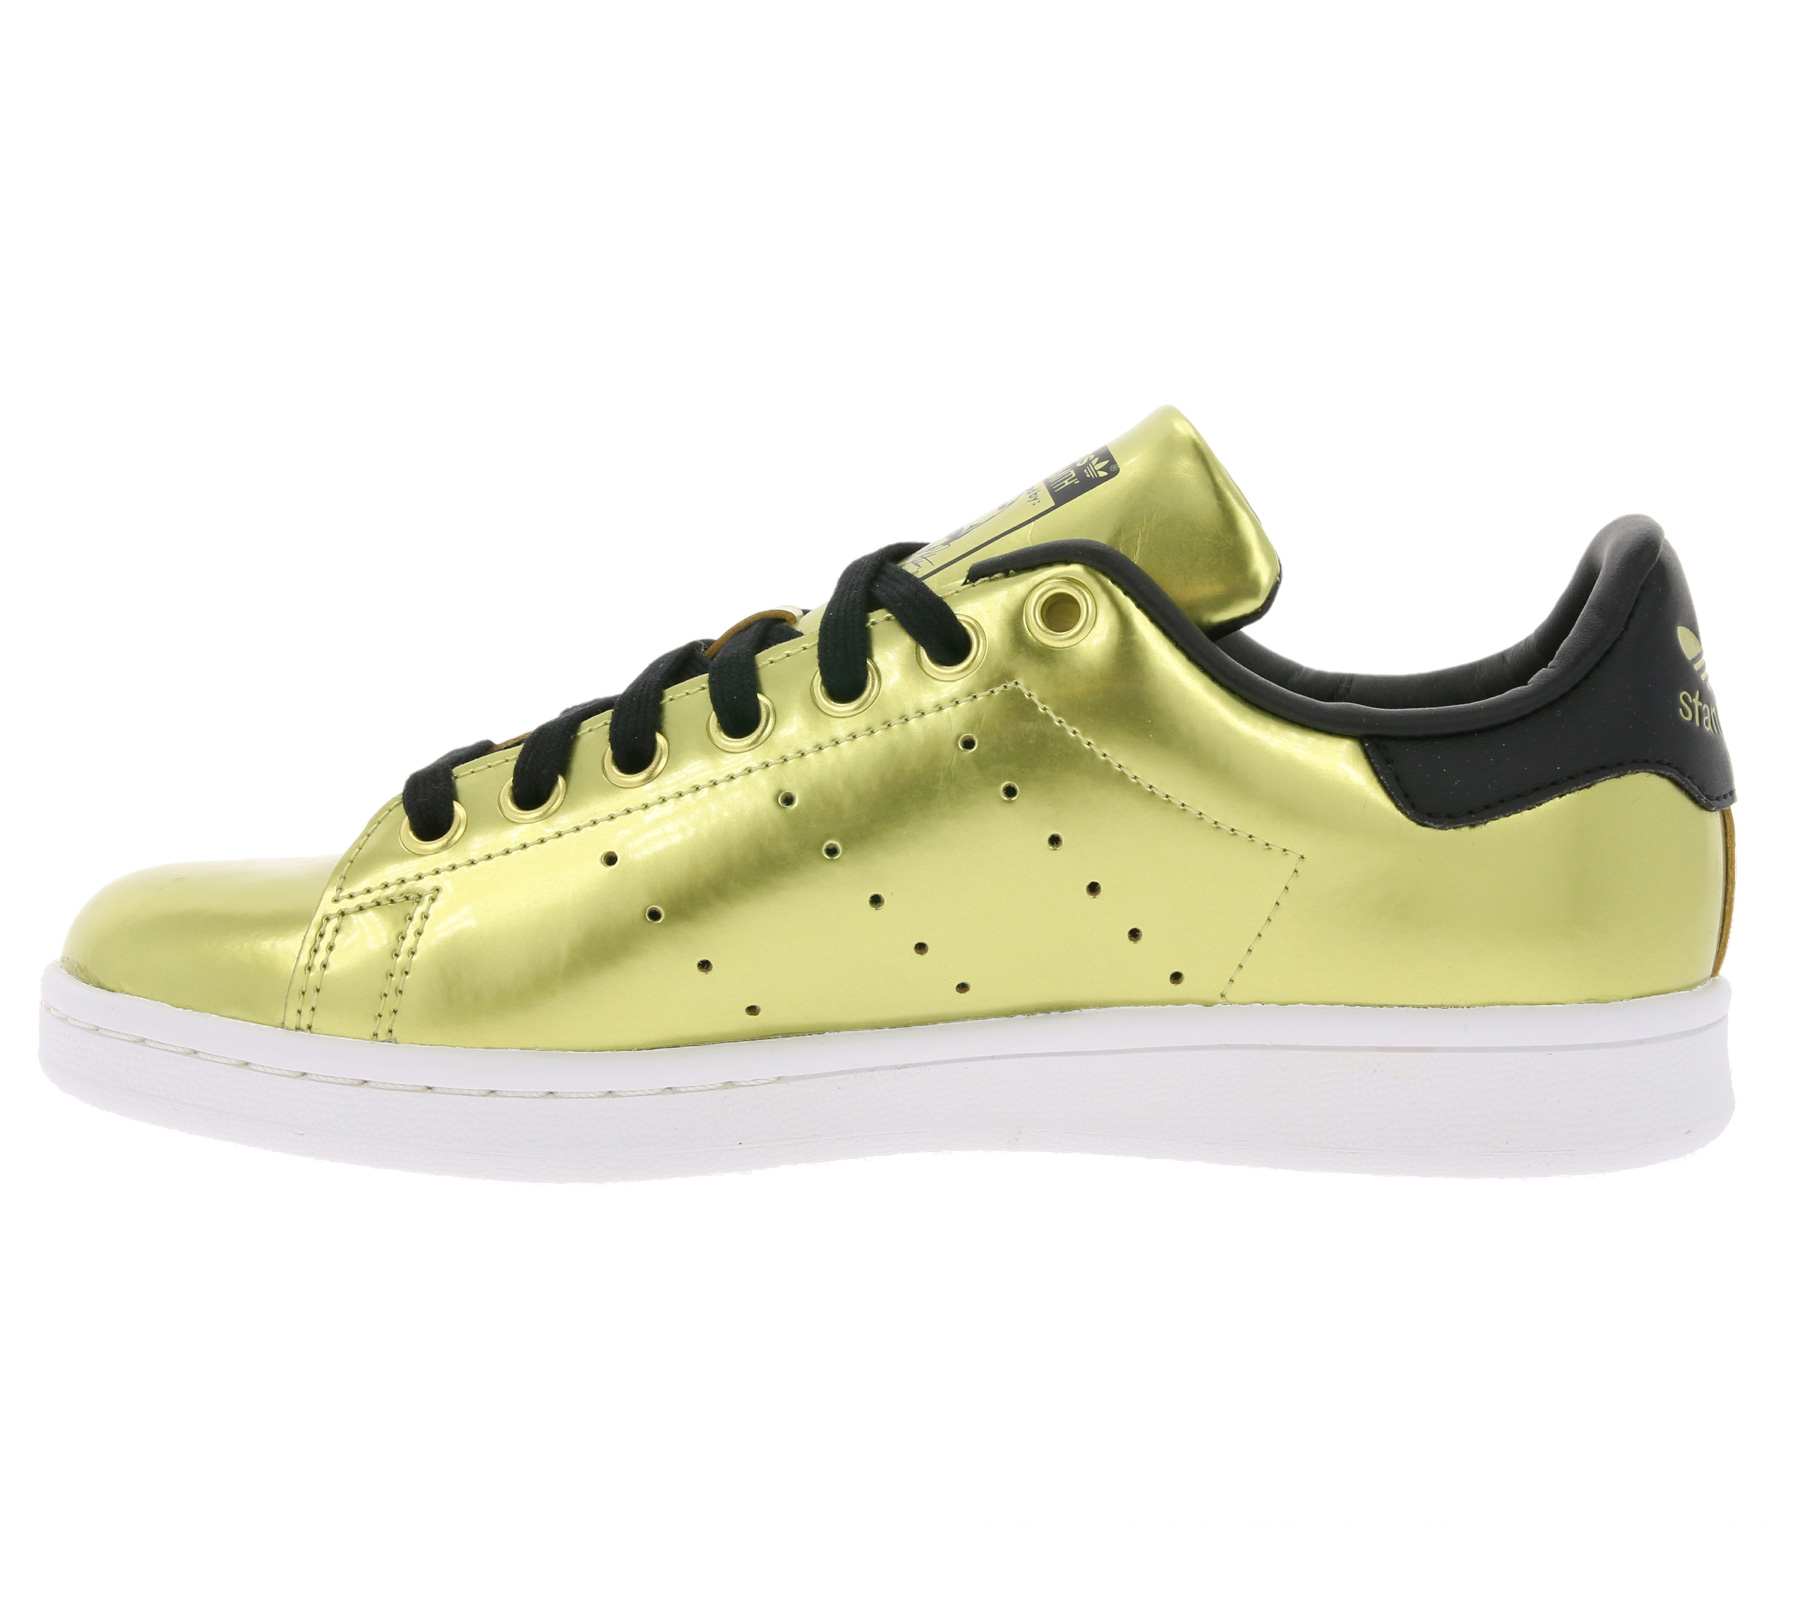 68f9e461a2 adidas Originals chaussures brillantes dames baskets Stan Smith W or ...